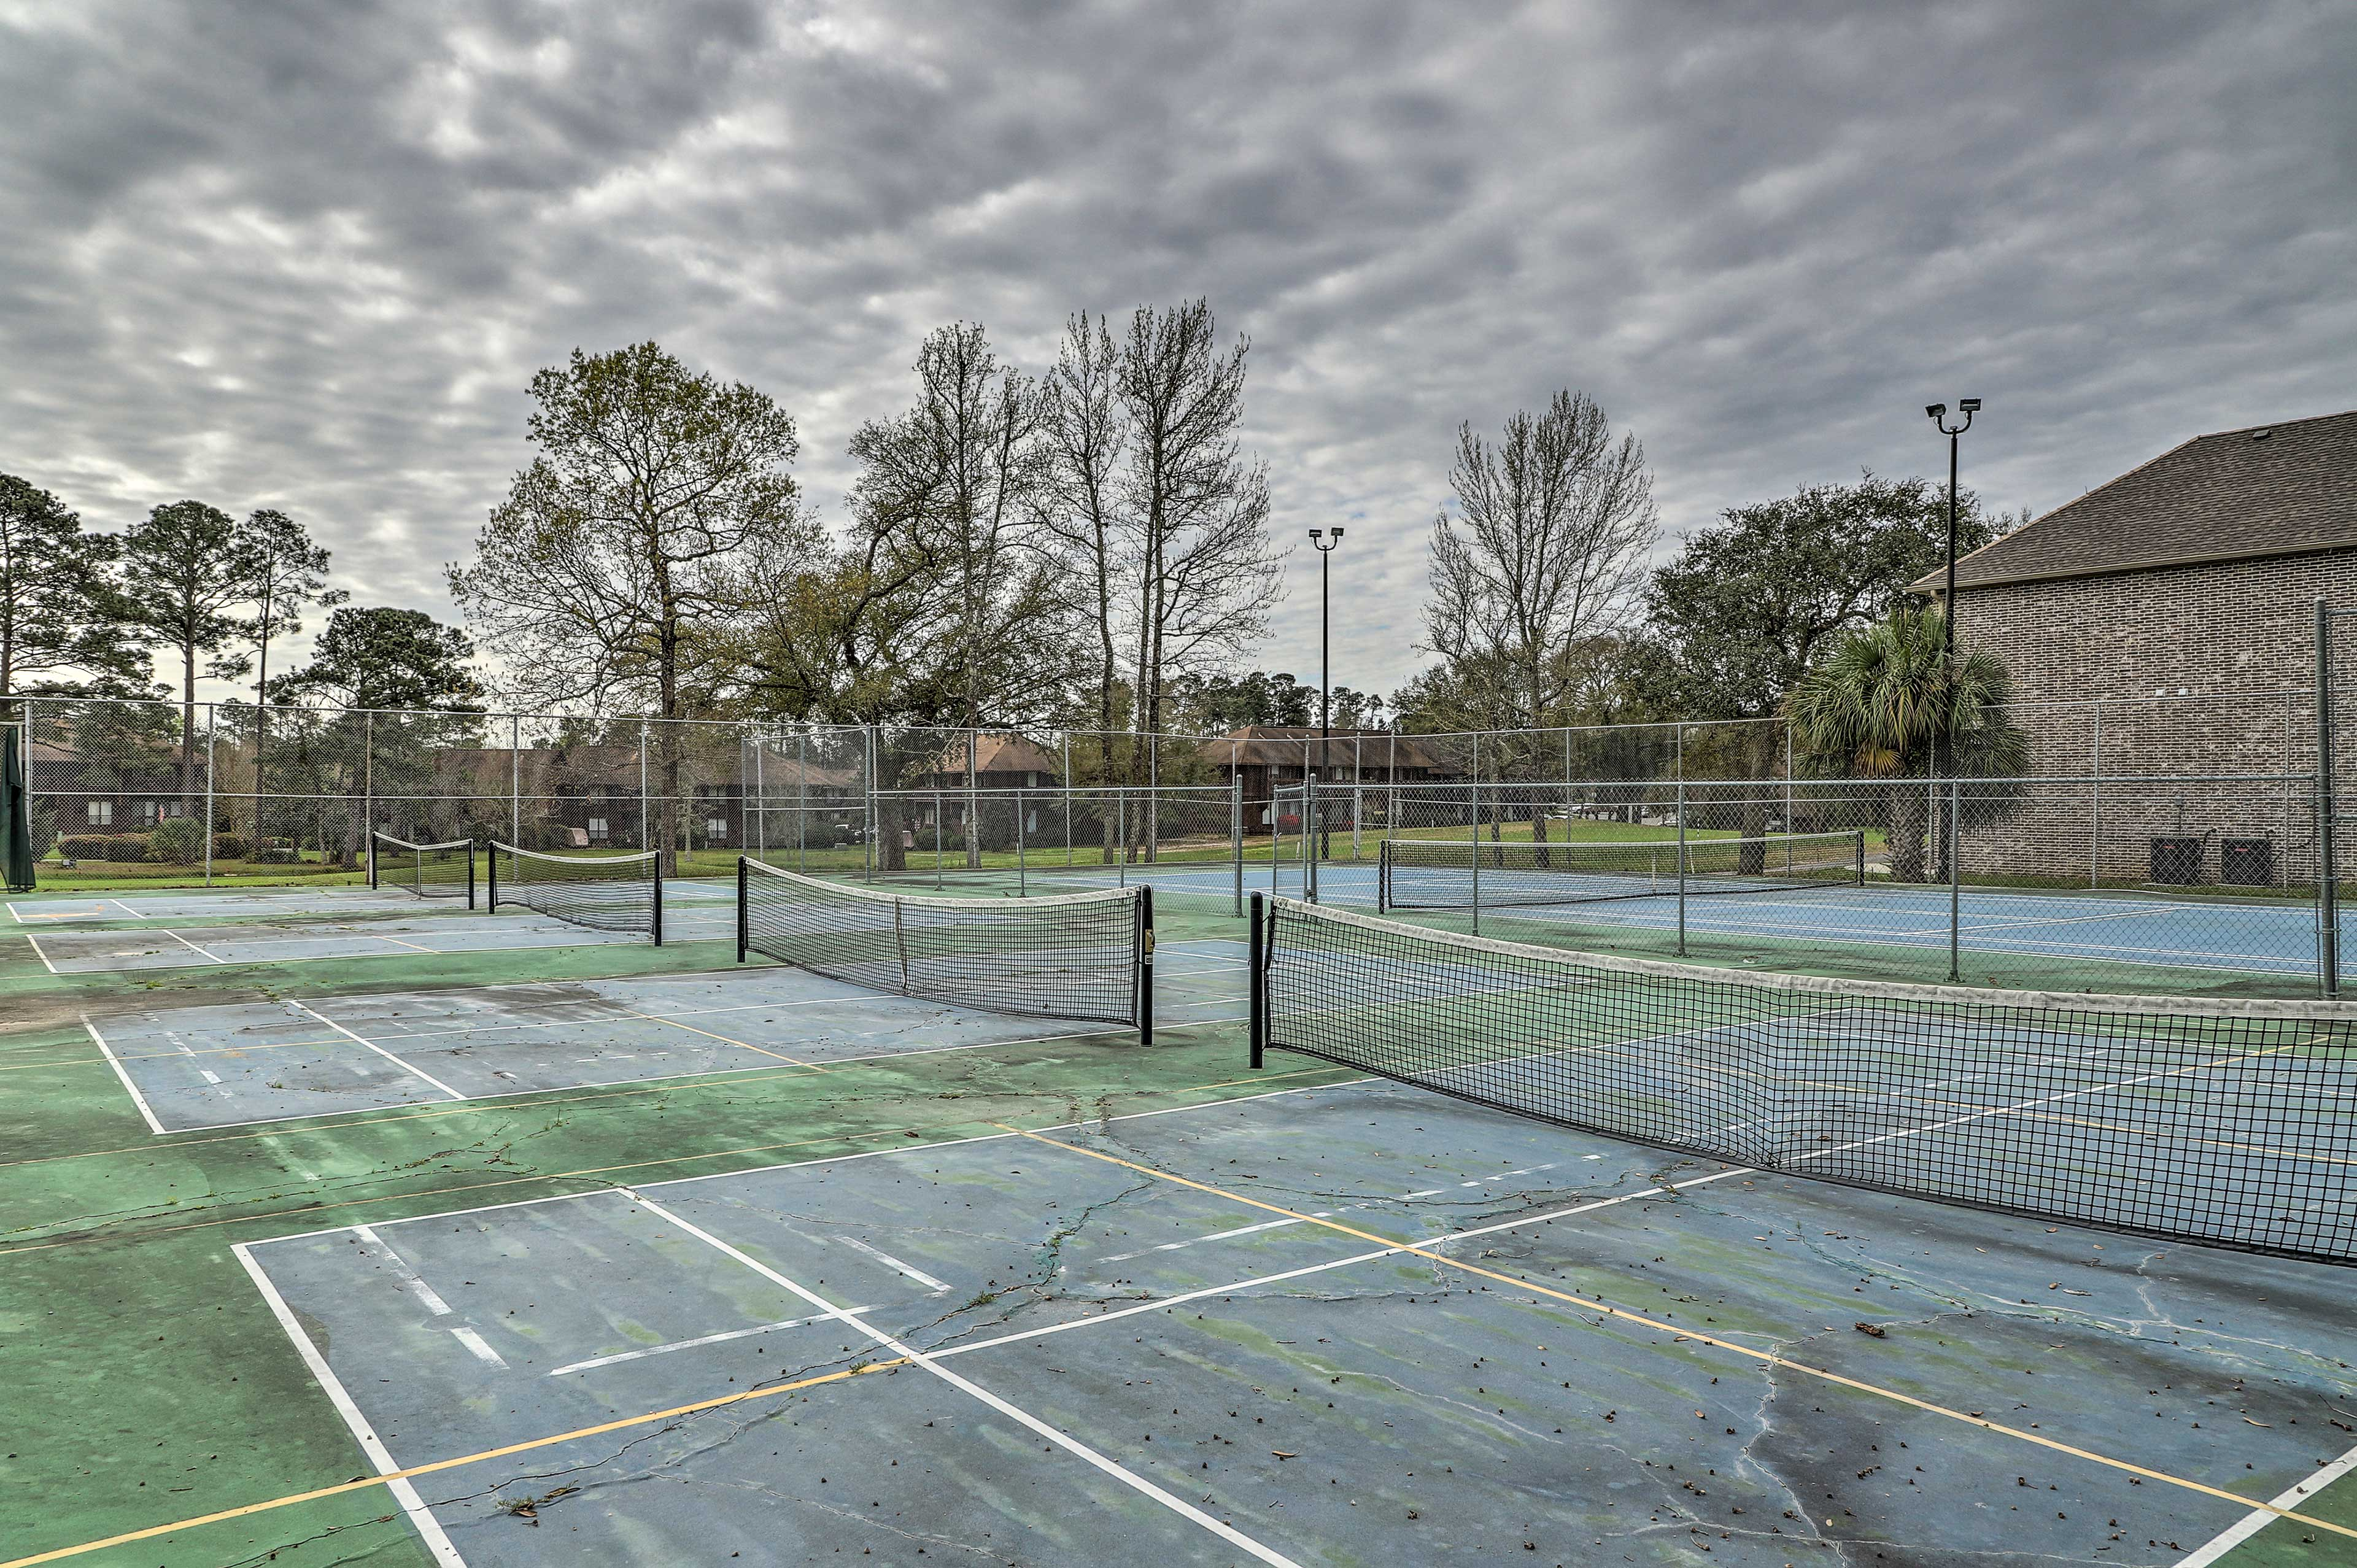 Play a round of tennis!